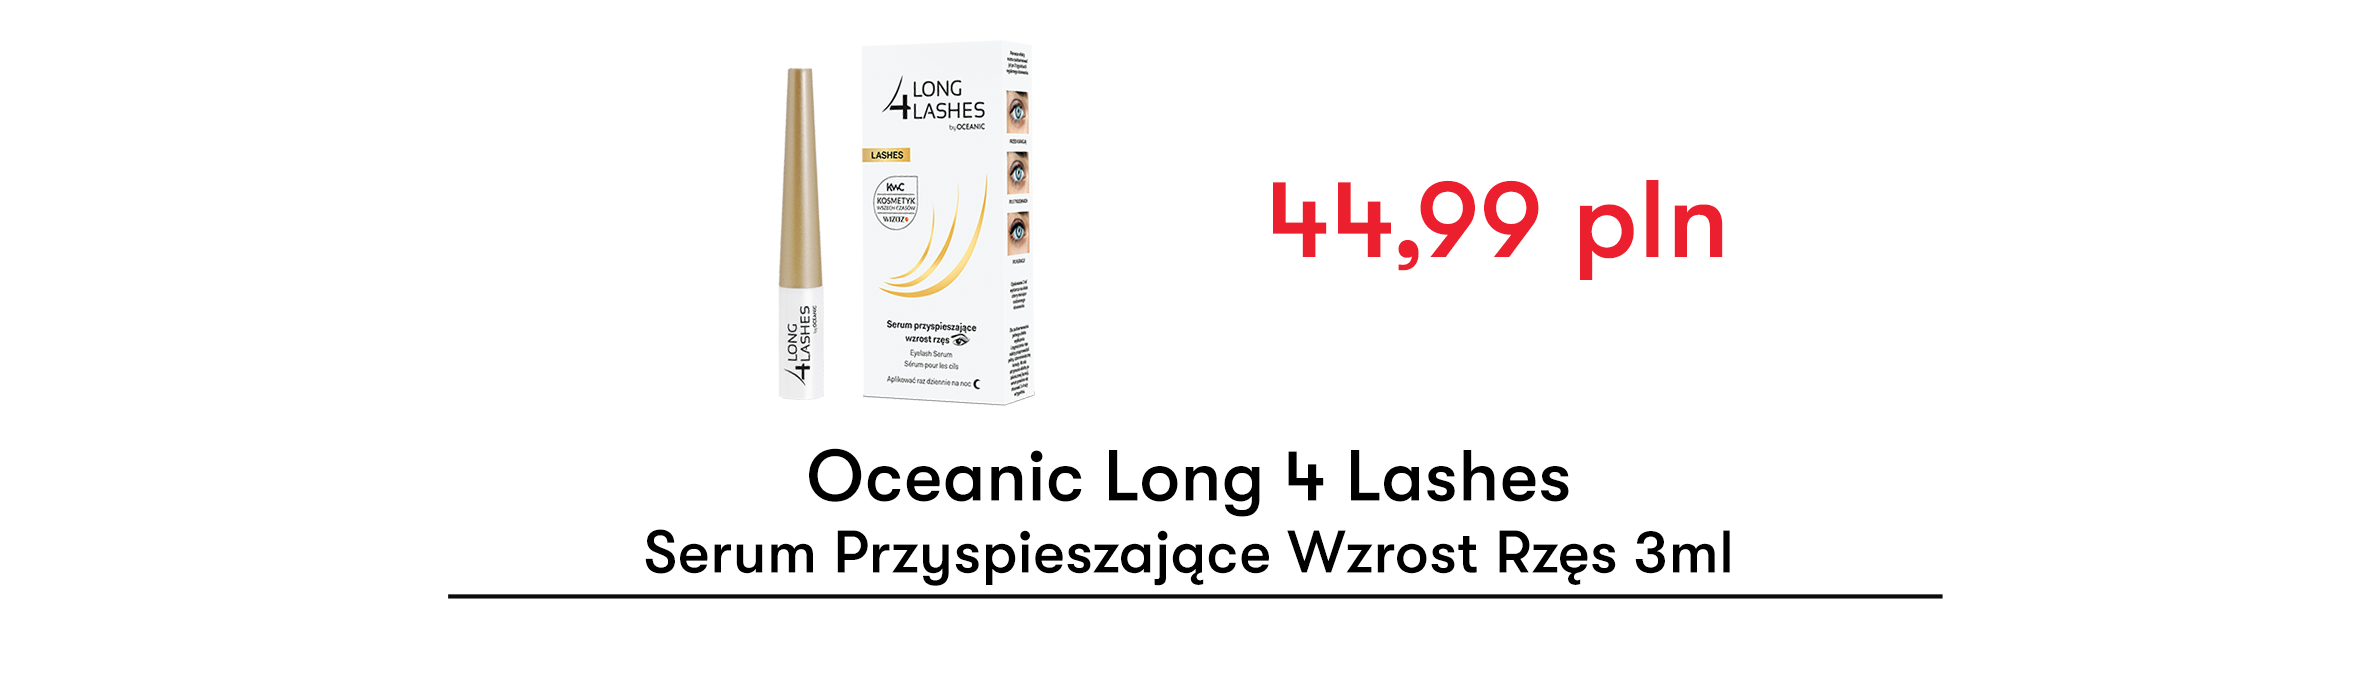 Oceanic Long 4 Lashes